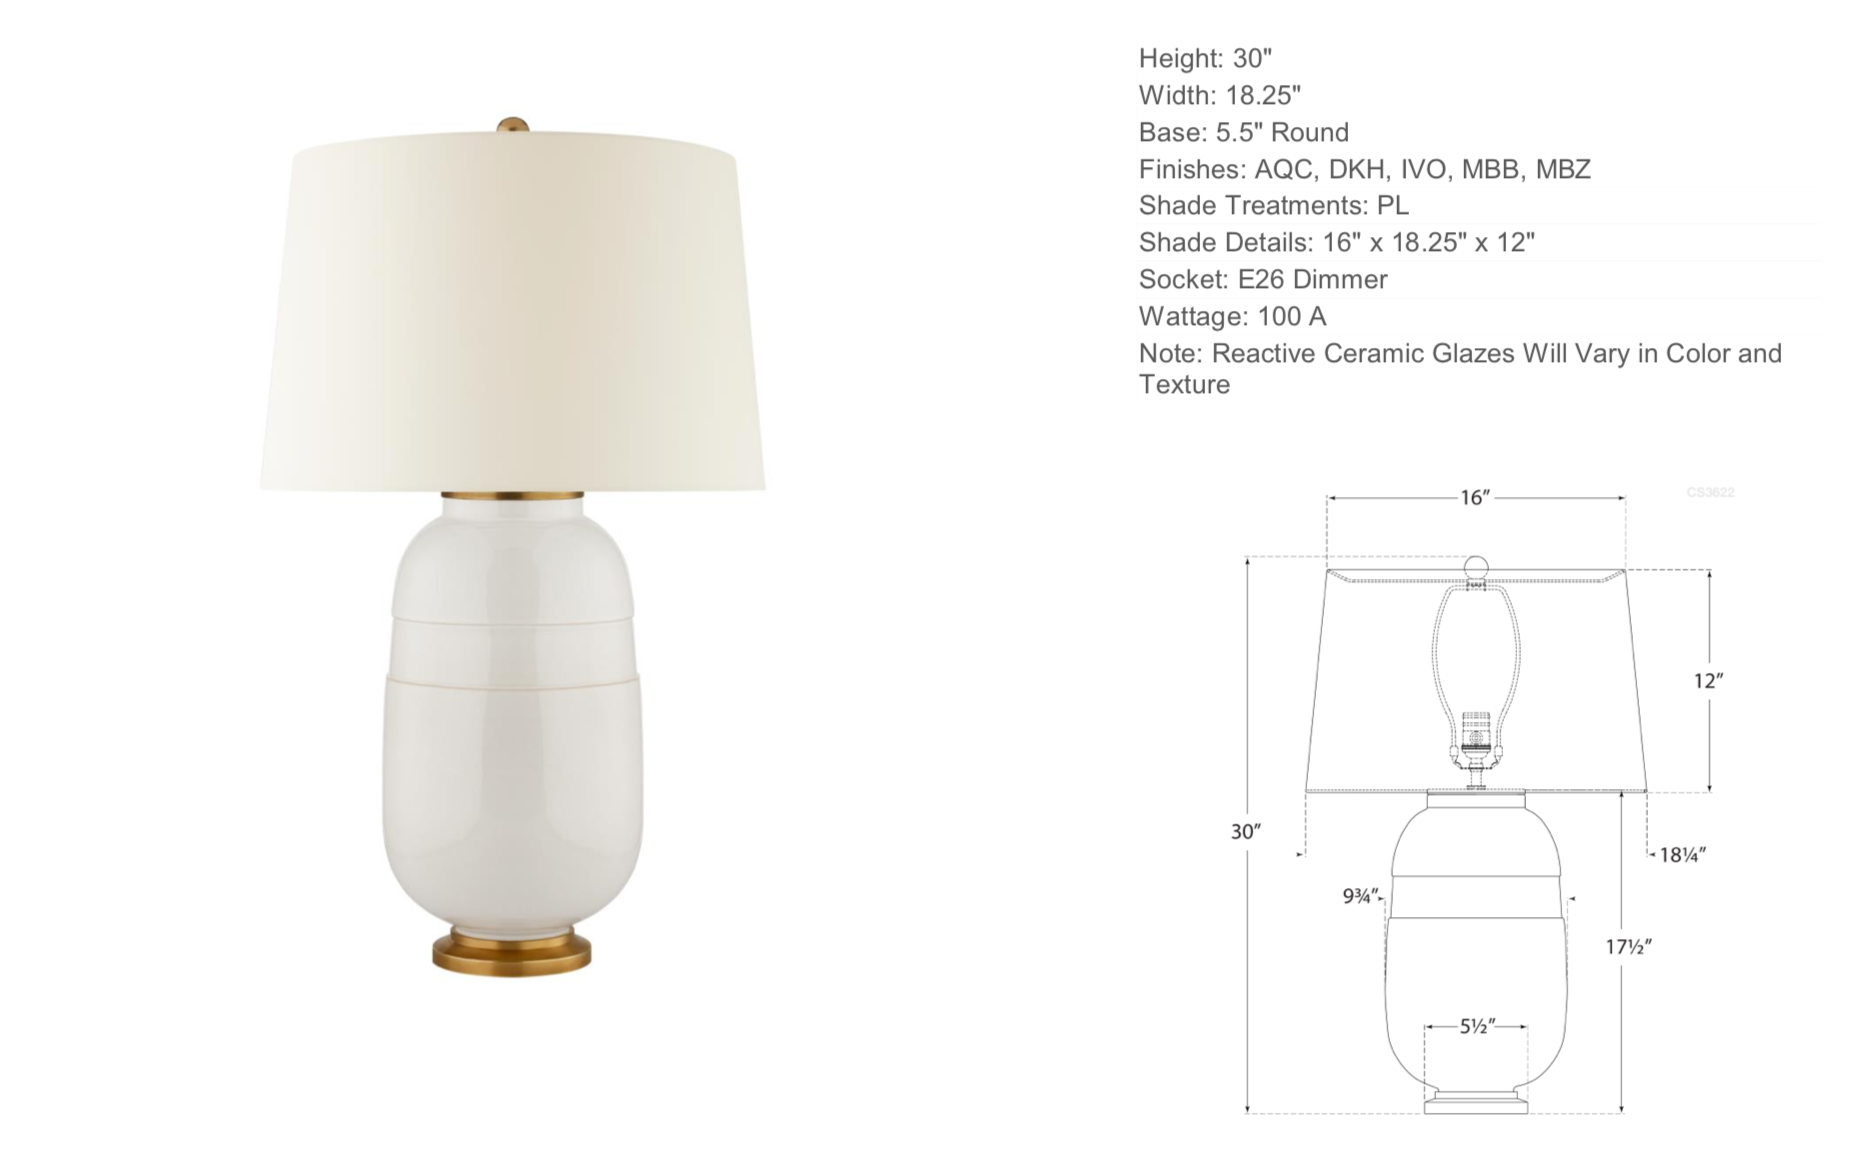 Ceramic Table Lamp in Ivory